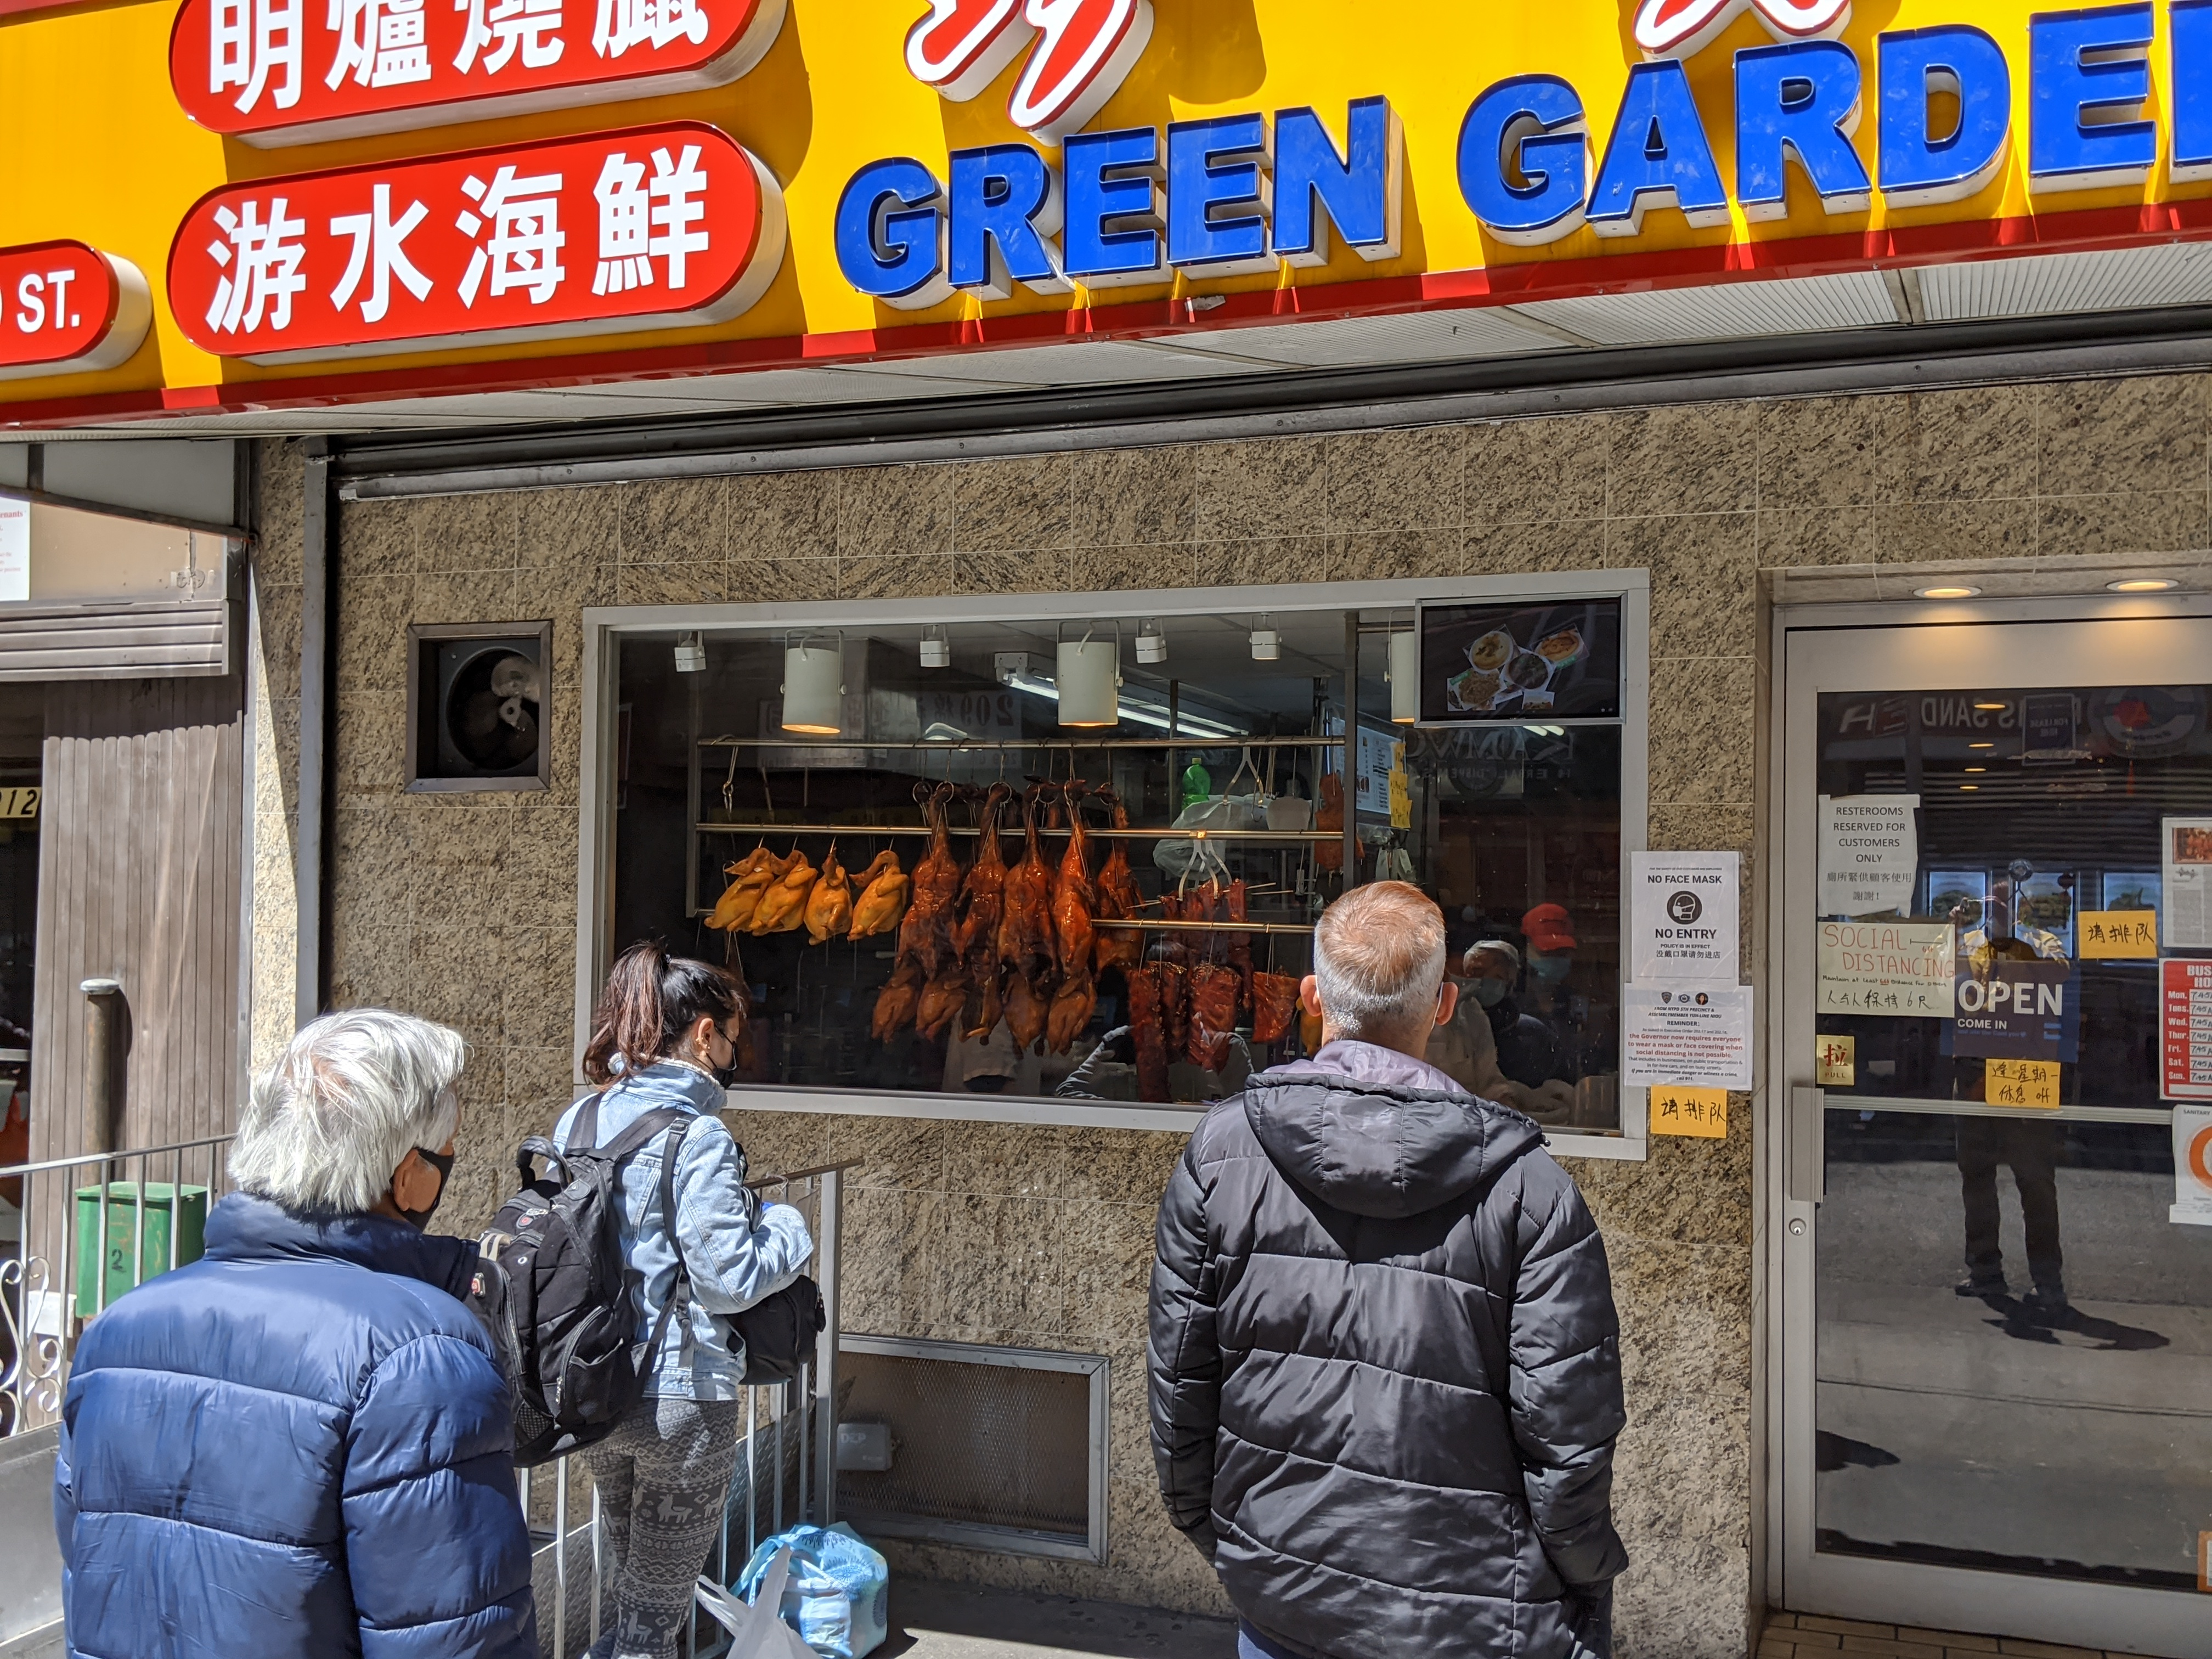 A line in front of the restaurant with ducks and pork seen in the window.